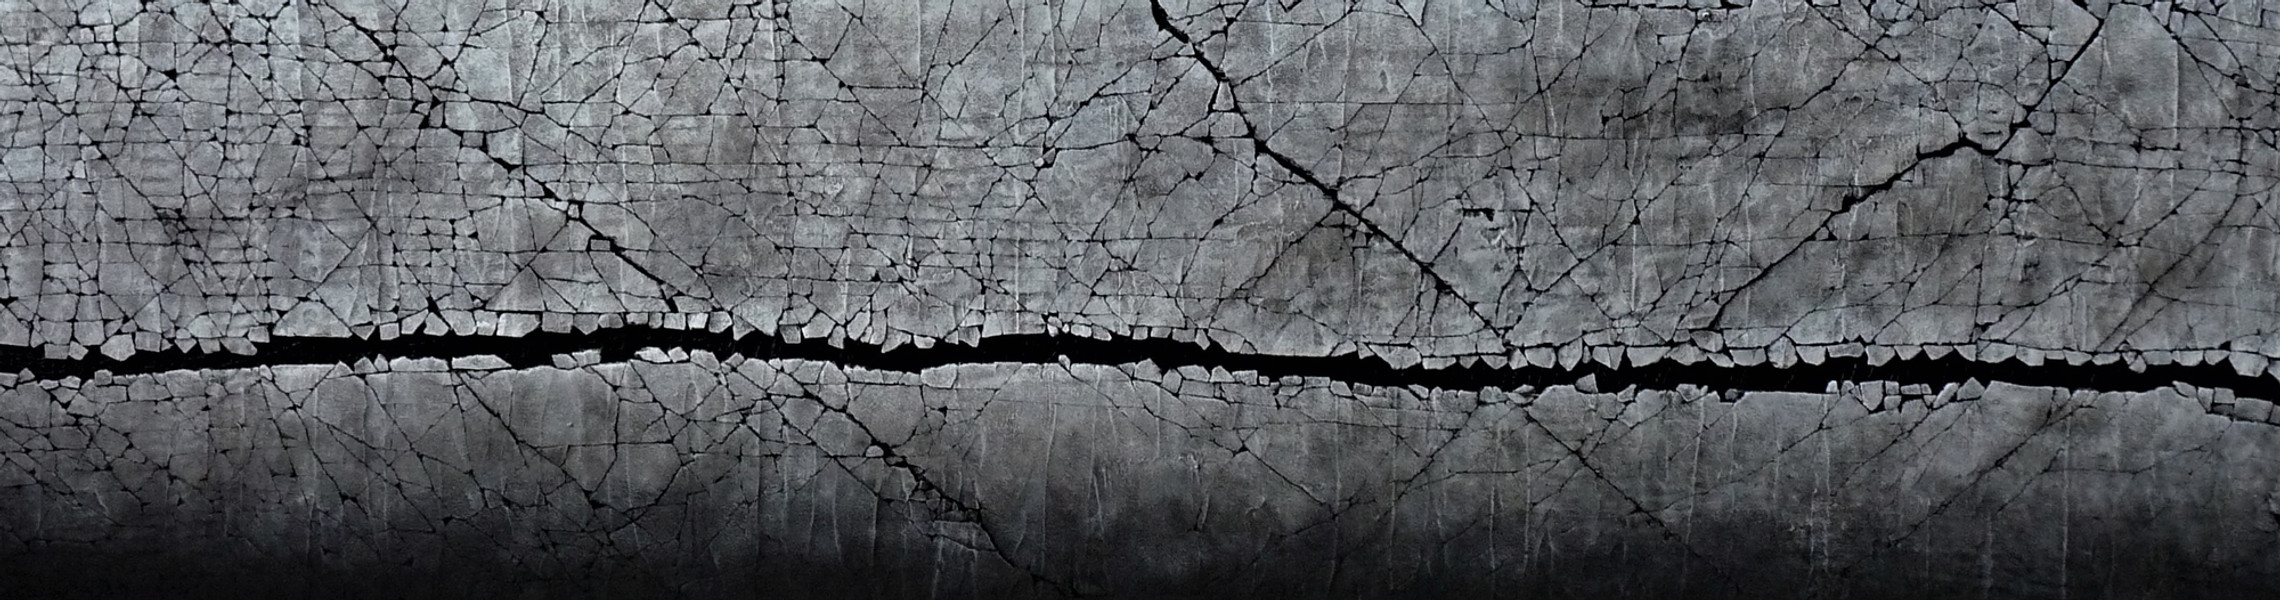 """Ebb and Flow Series: In Darkness, there is Light. Mixed media. 18"""" x 65"""". 2020 PRICE:  $3200.00 AVAILABLE at The Effusion Gallery and Glass Studio"""